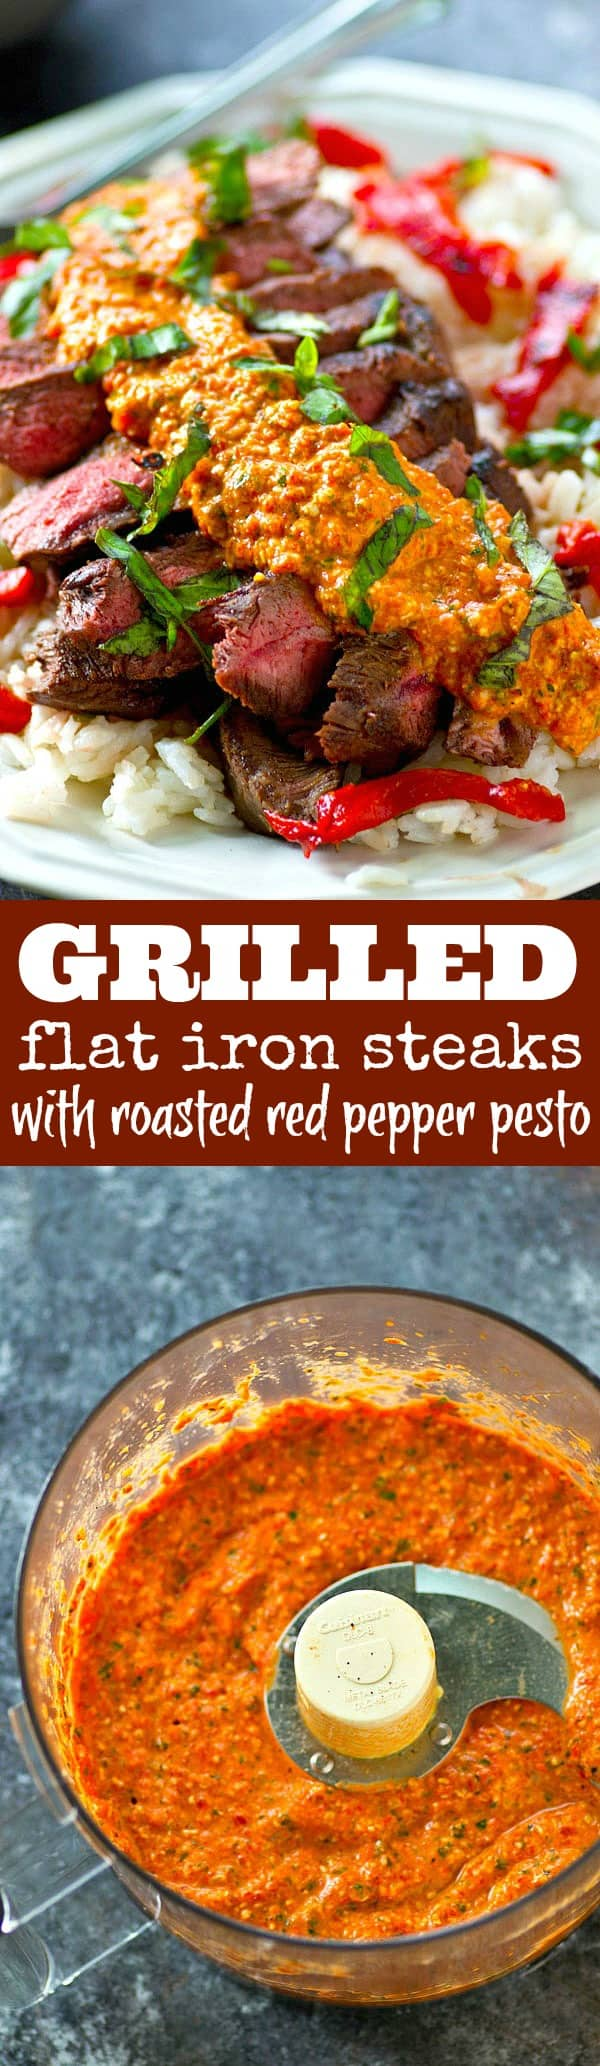 Juicy grilled flat iron steak cooks up to perfection within minutes on the grill and a roasted red pepper pesto drizzled on top pumps up the flavors to max!